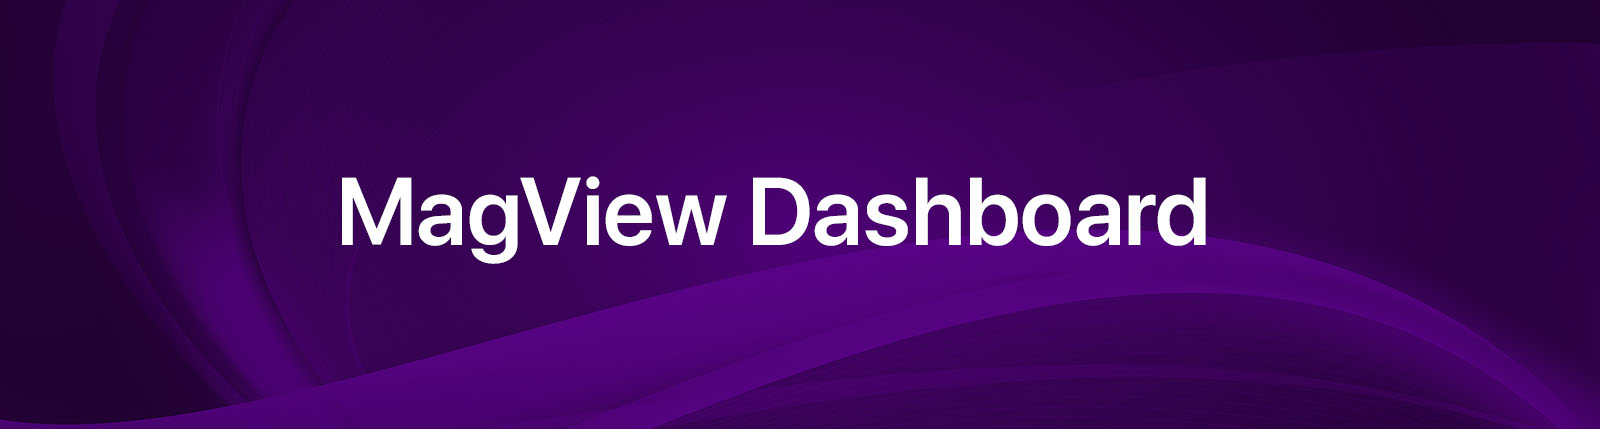 , MagView Dashboard